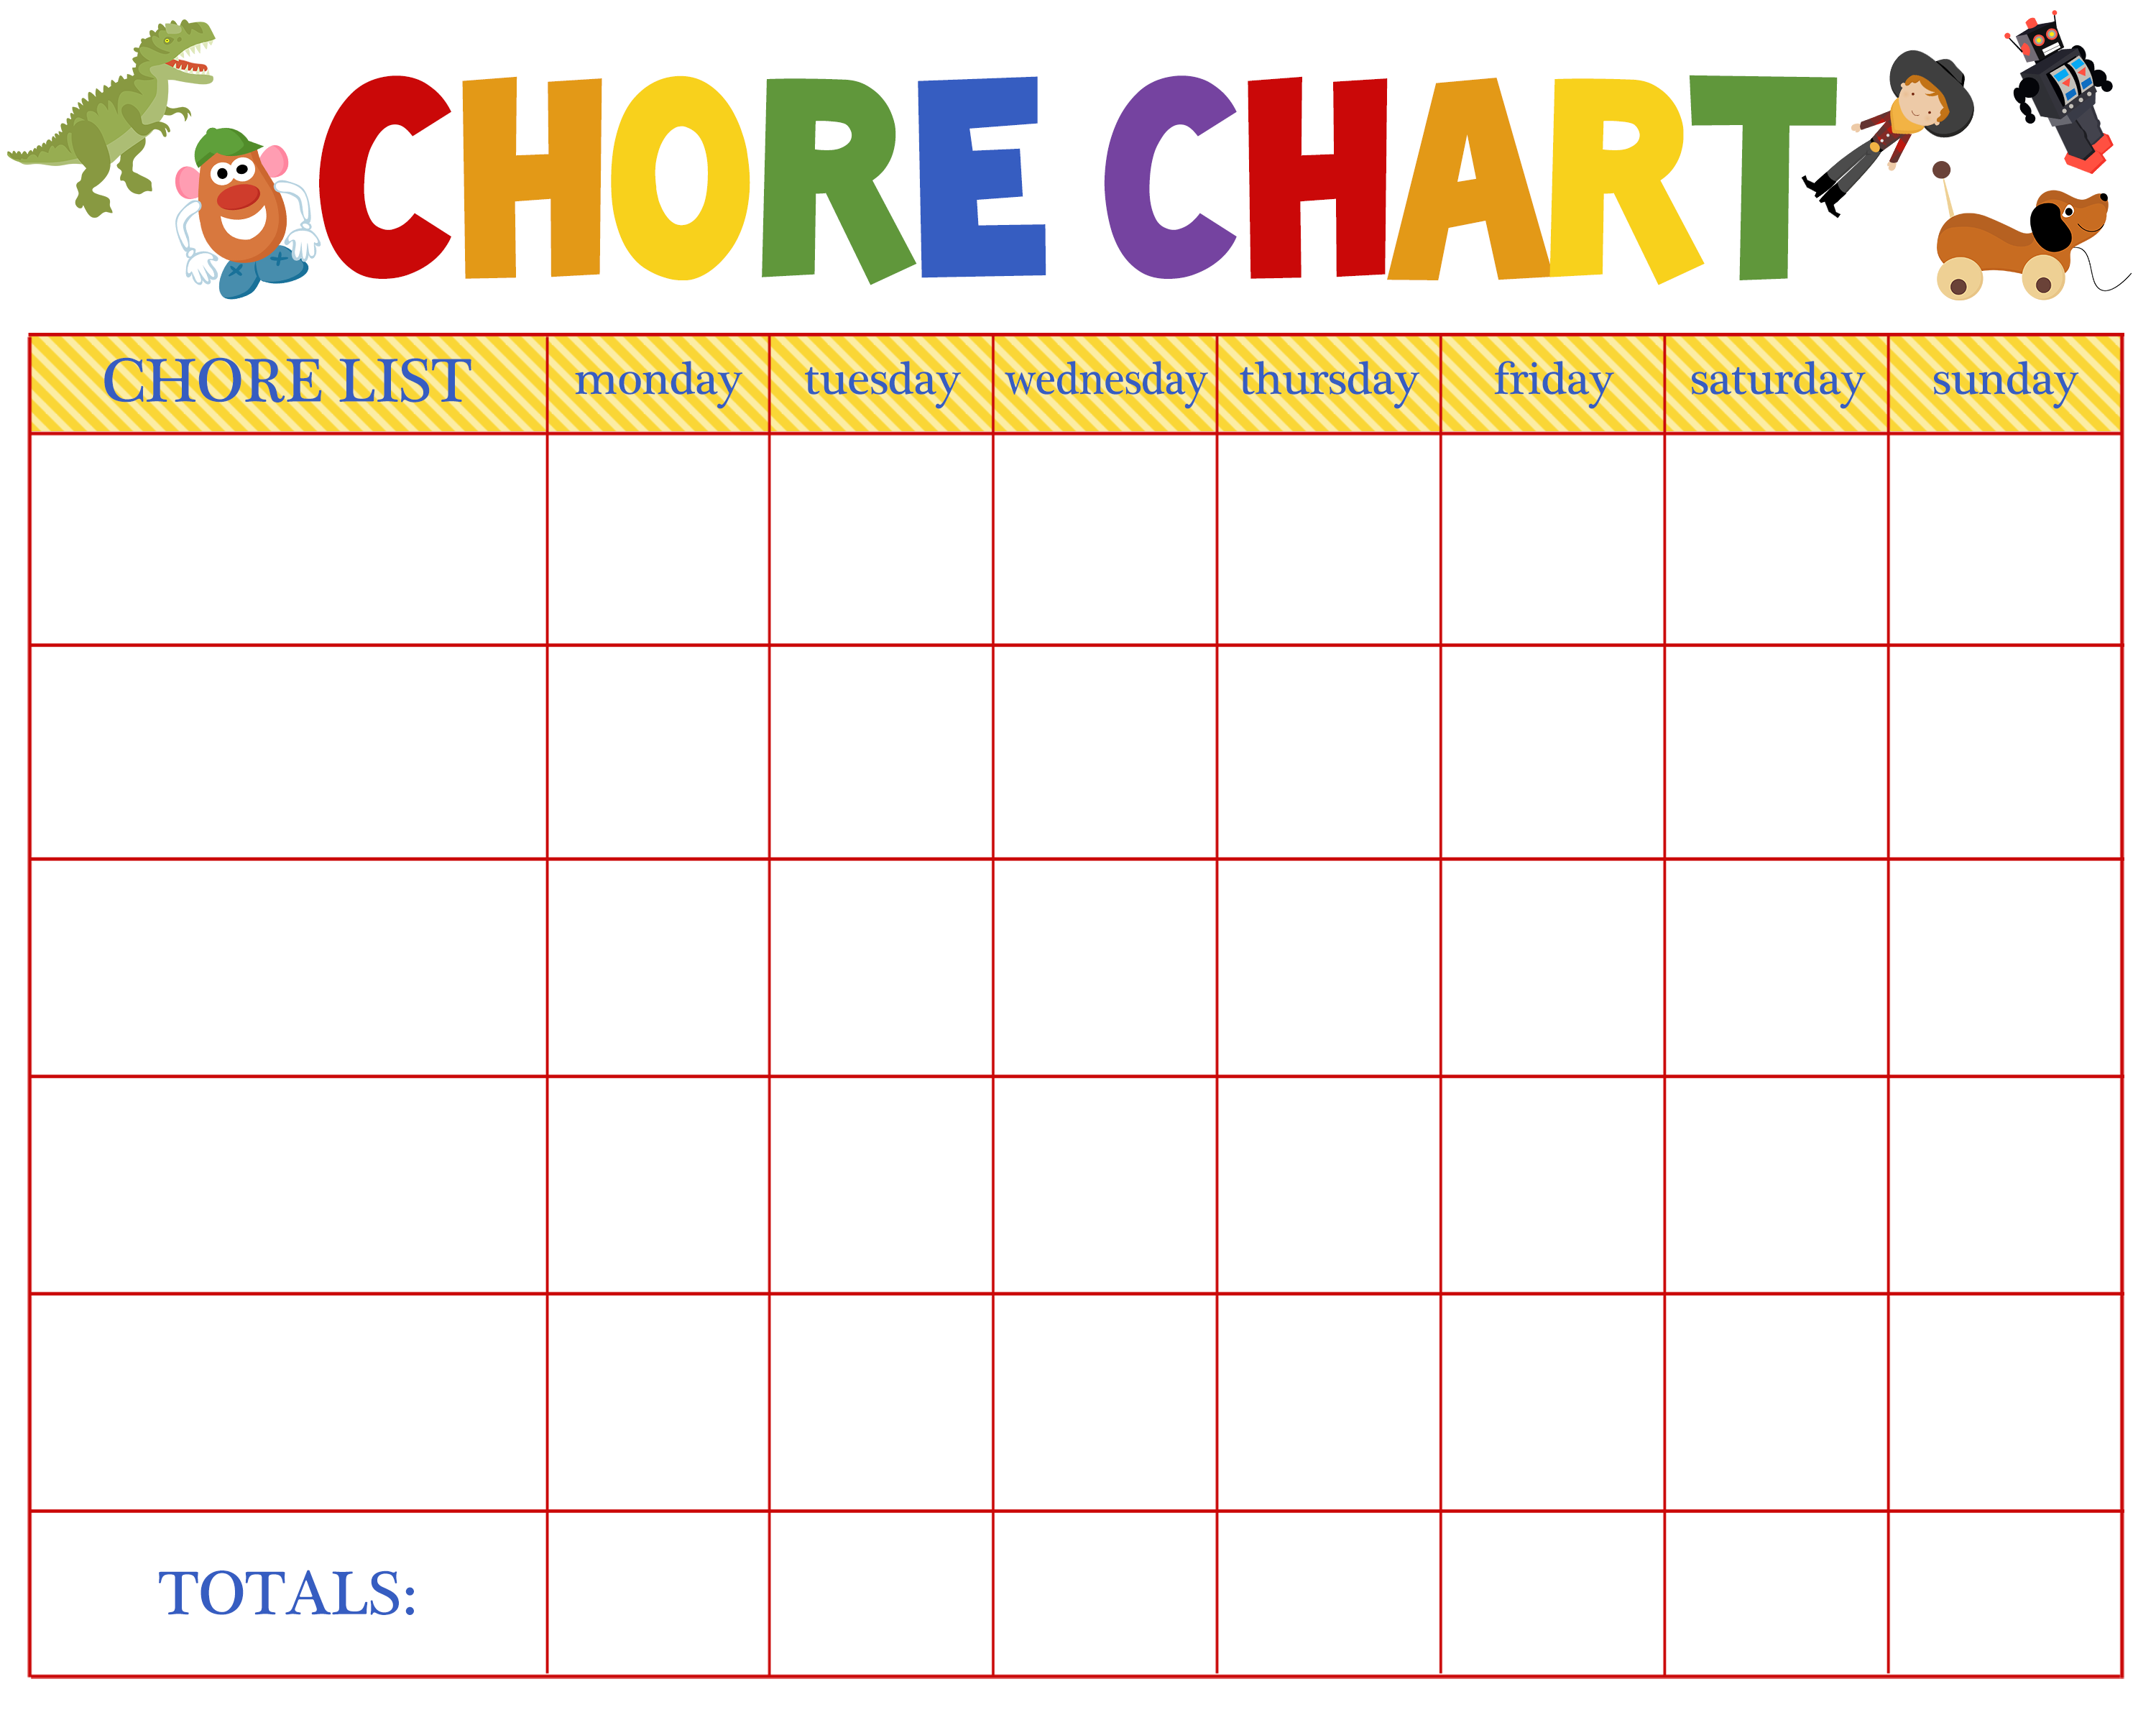 Free behavioral aid printables jumping jax designs for Chore list template for kids